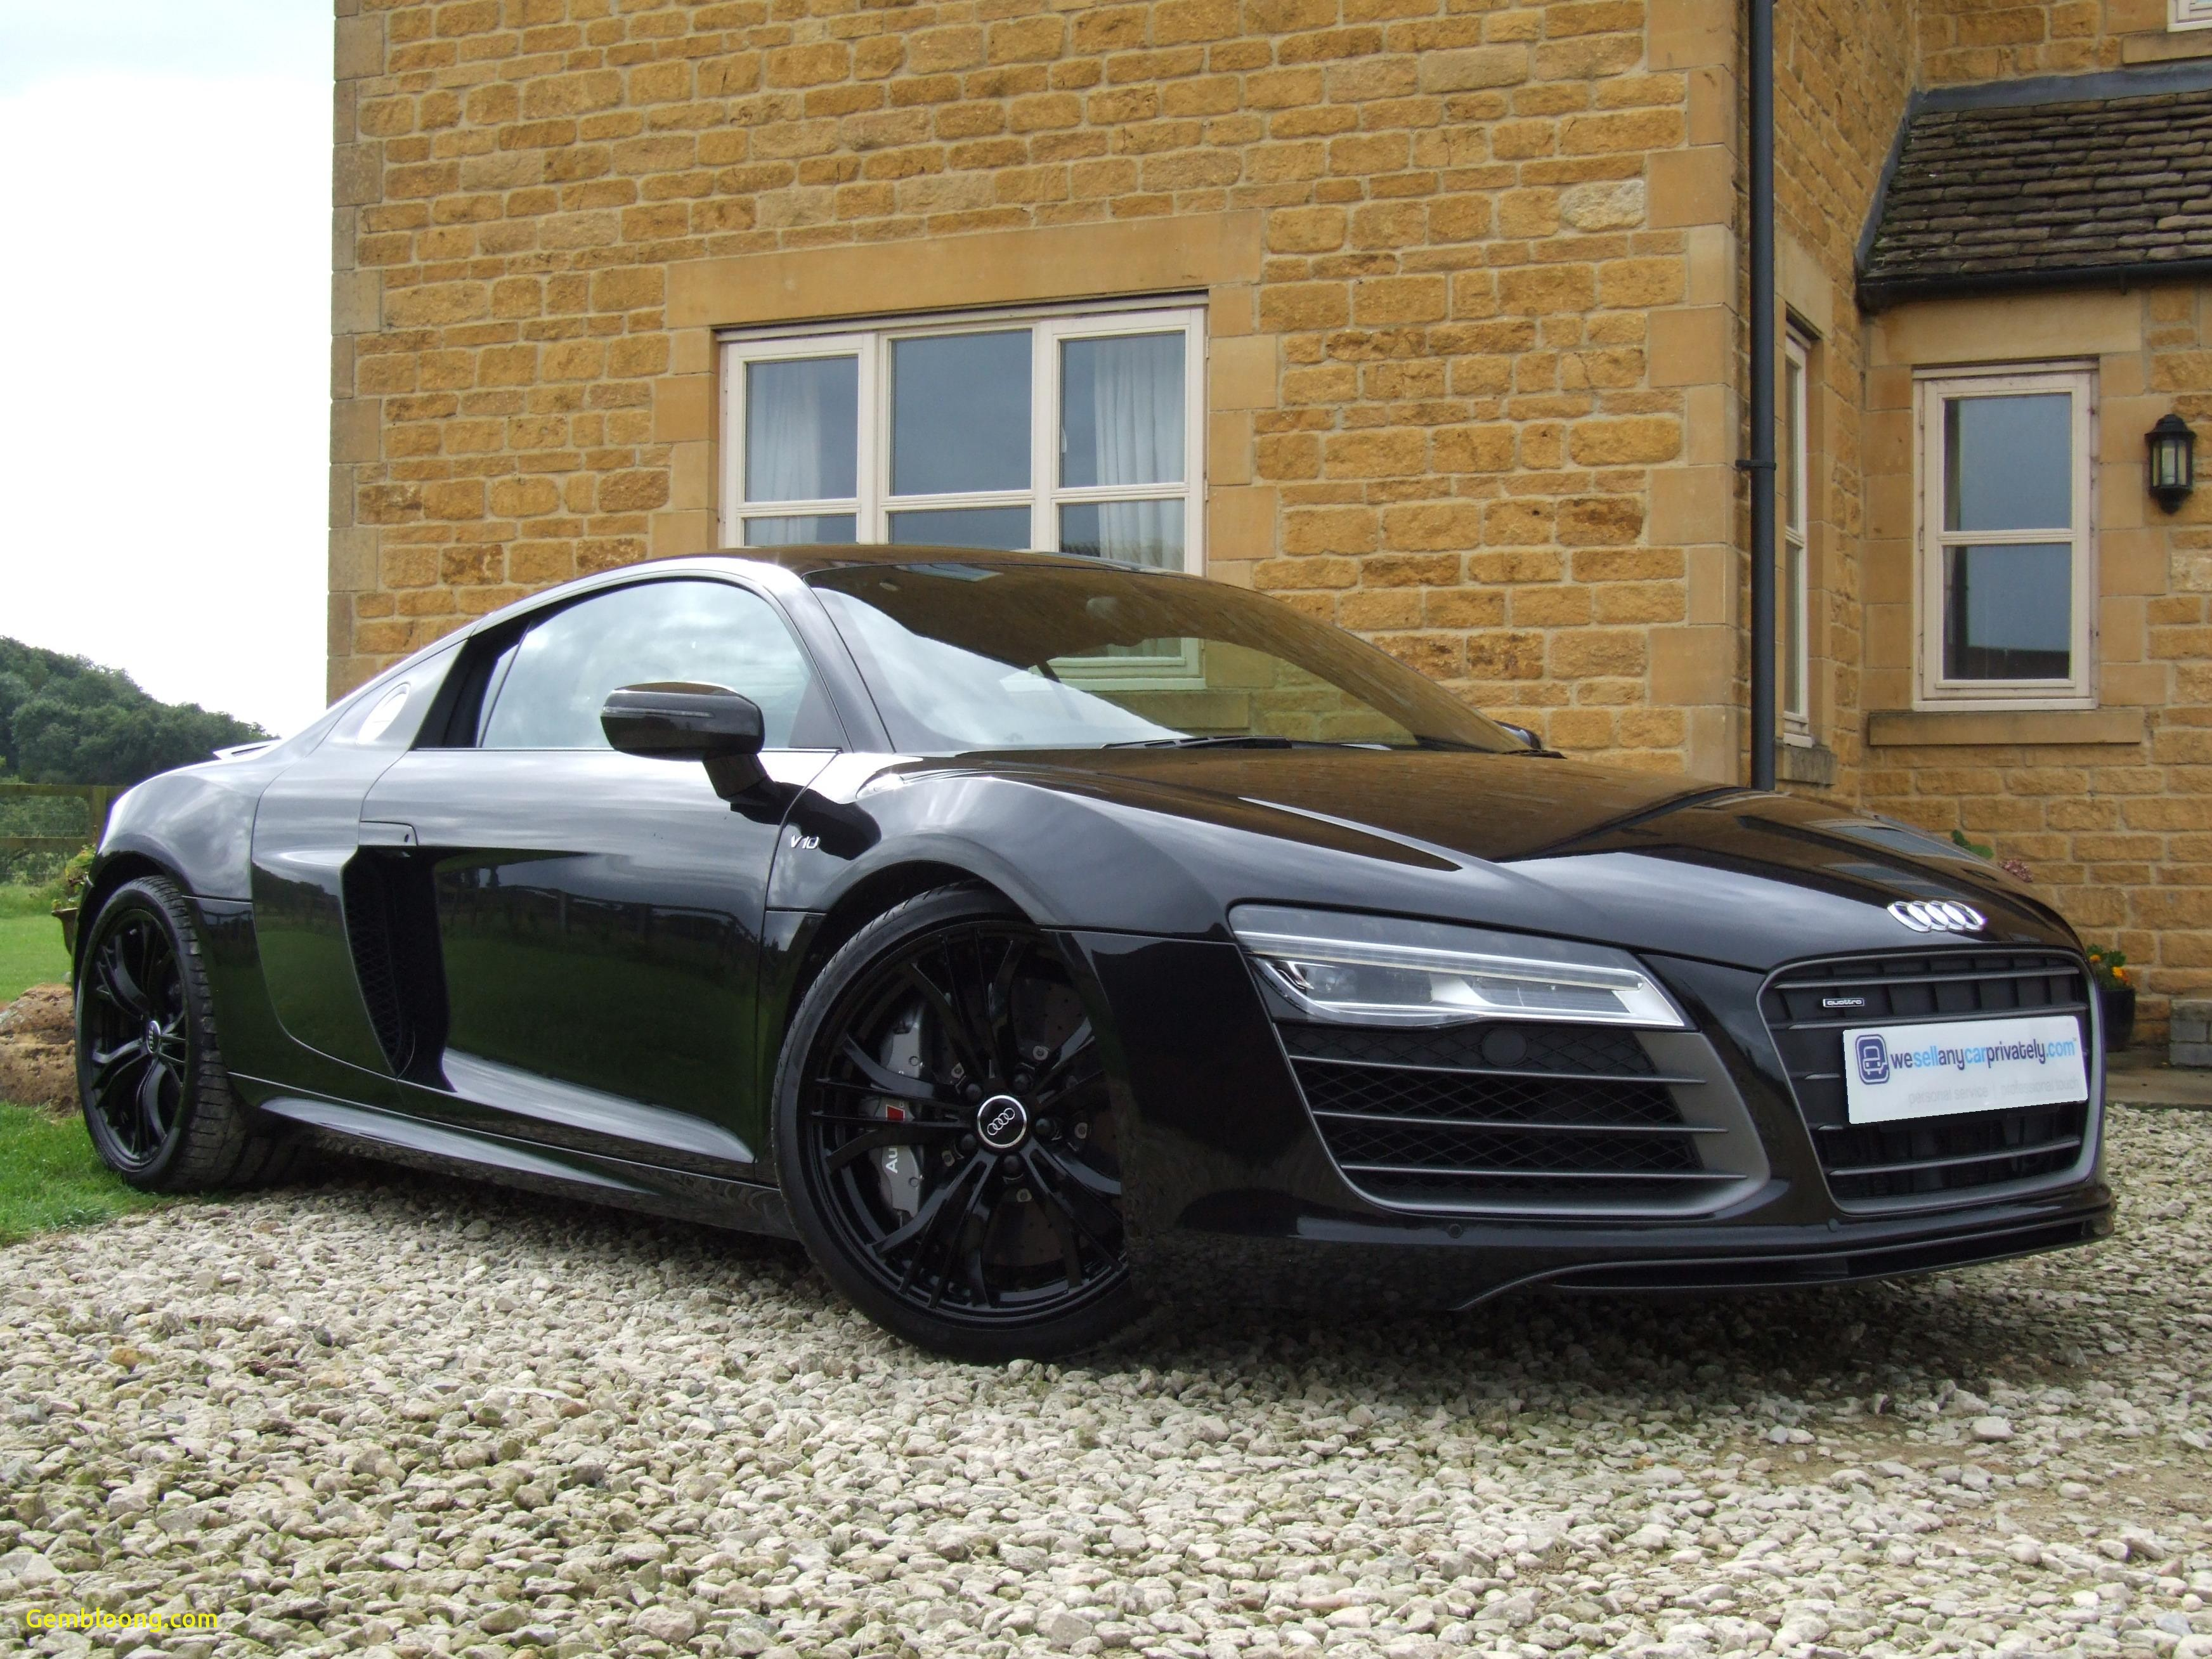 sale any car elegant audi r8 v10 plus featured image of sale any car